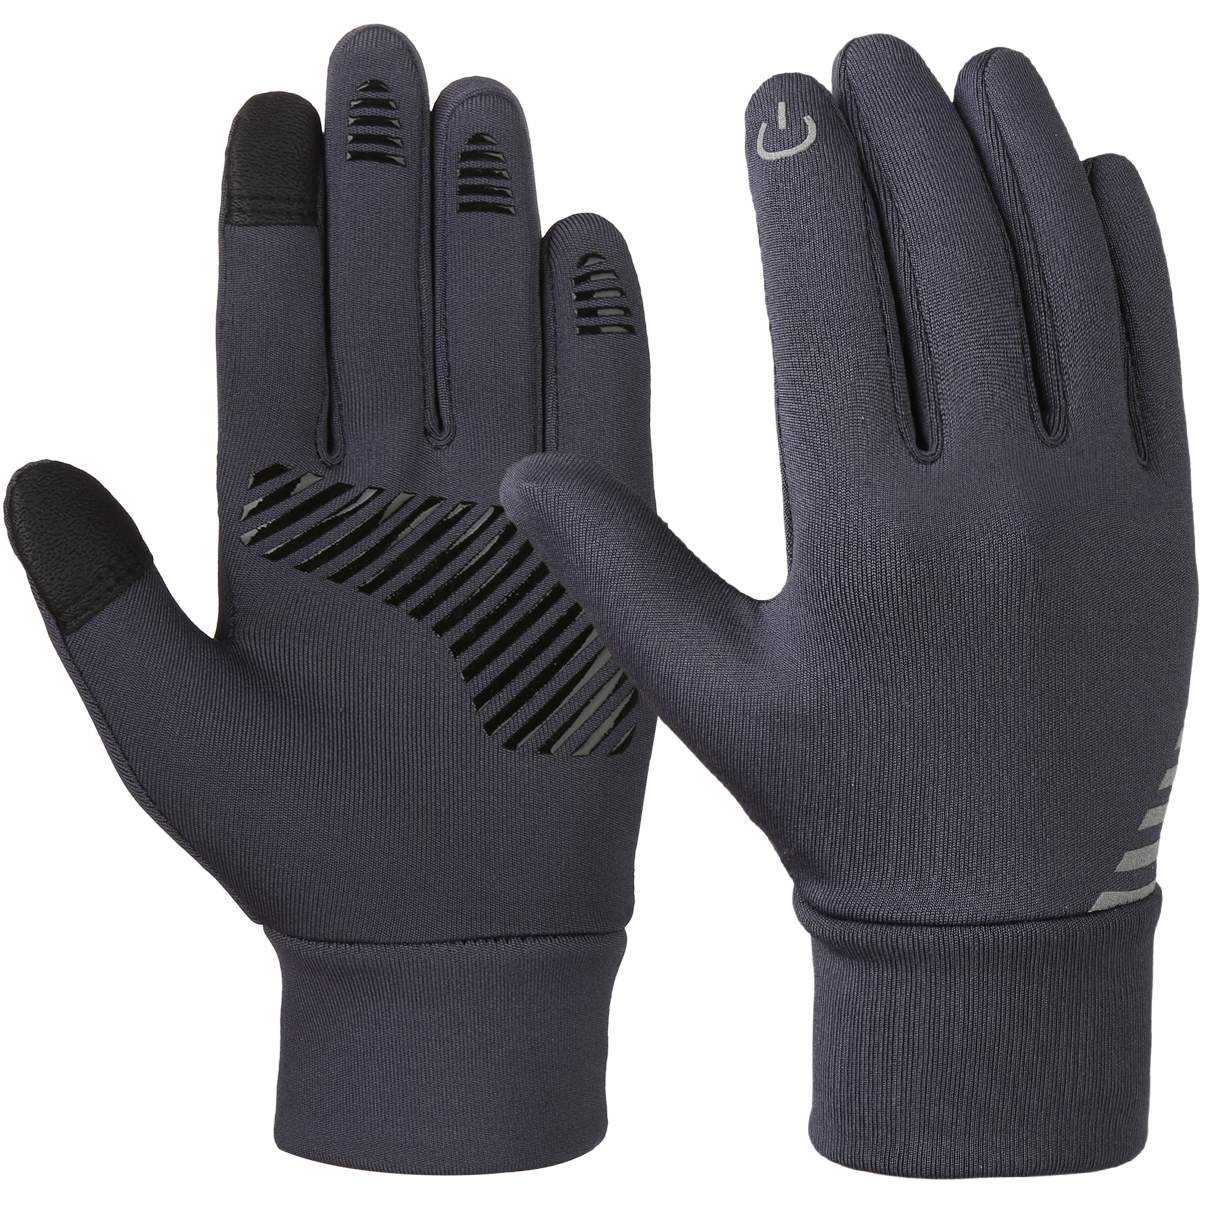 Vbiger Grey between 4-10 Years Old Kids Winter Cold Weather Gloves Anti-skid Touch Screen Gloves Soft Outdoor Sports Gloves